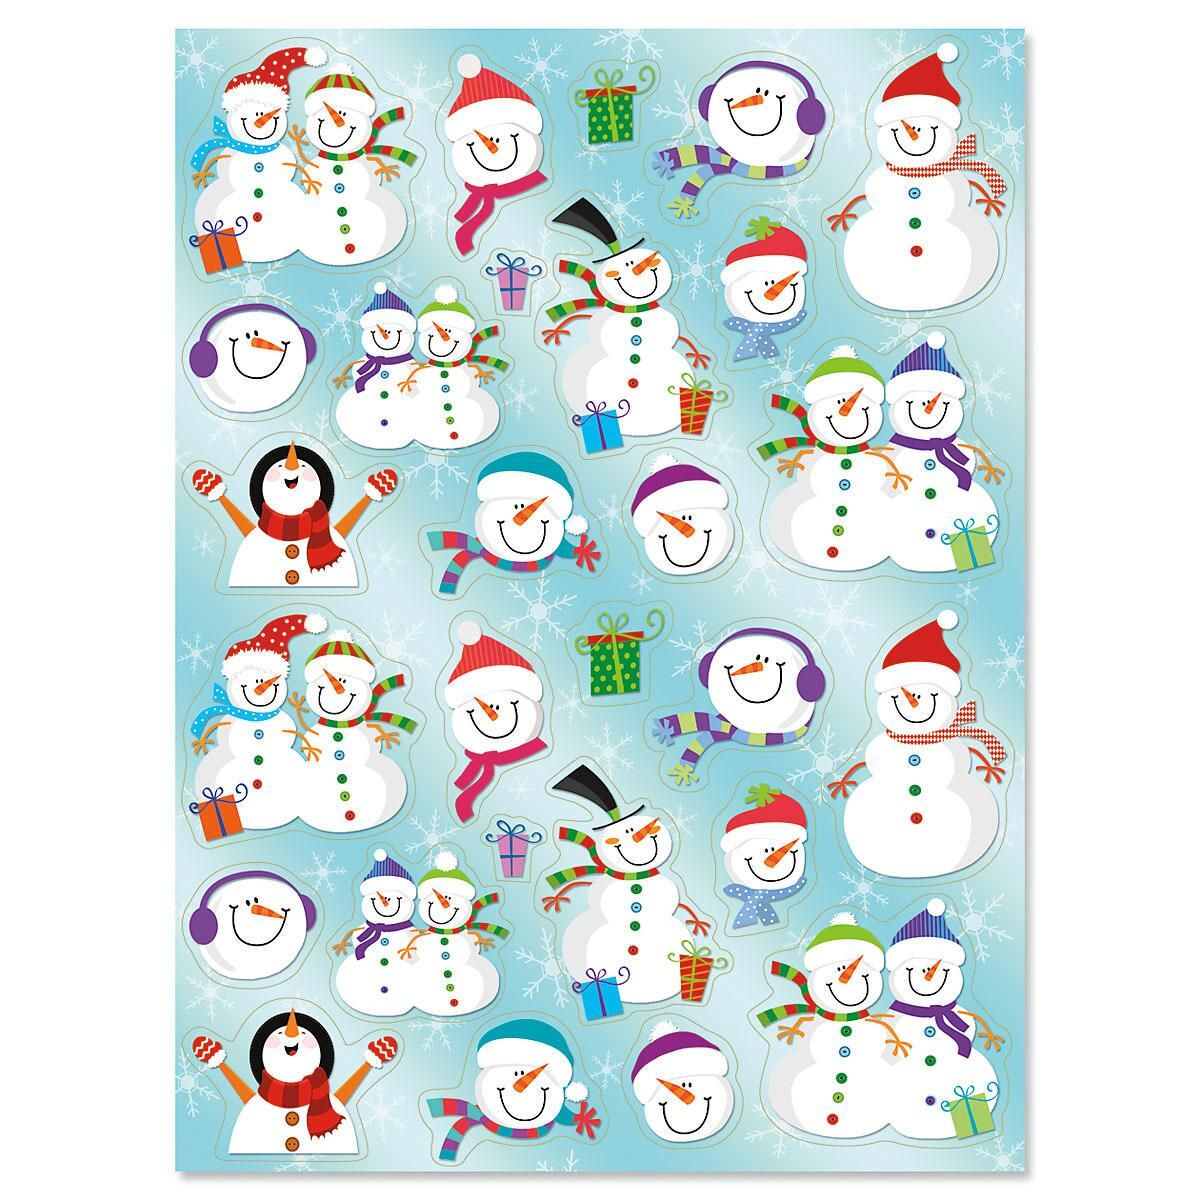 Snowmen in Hats Stickers - BOGO